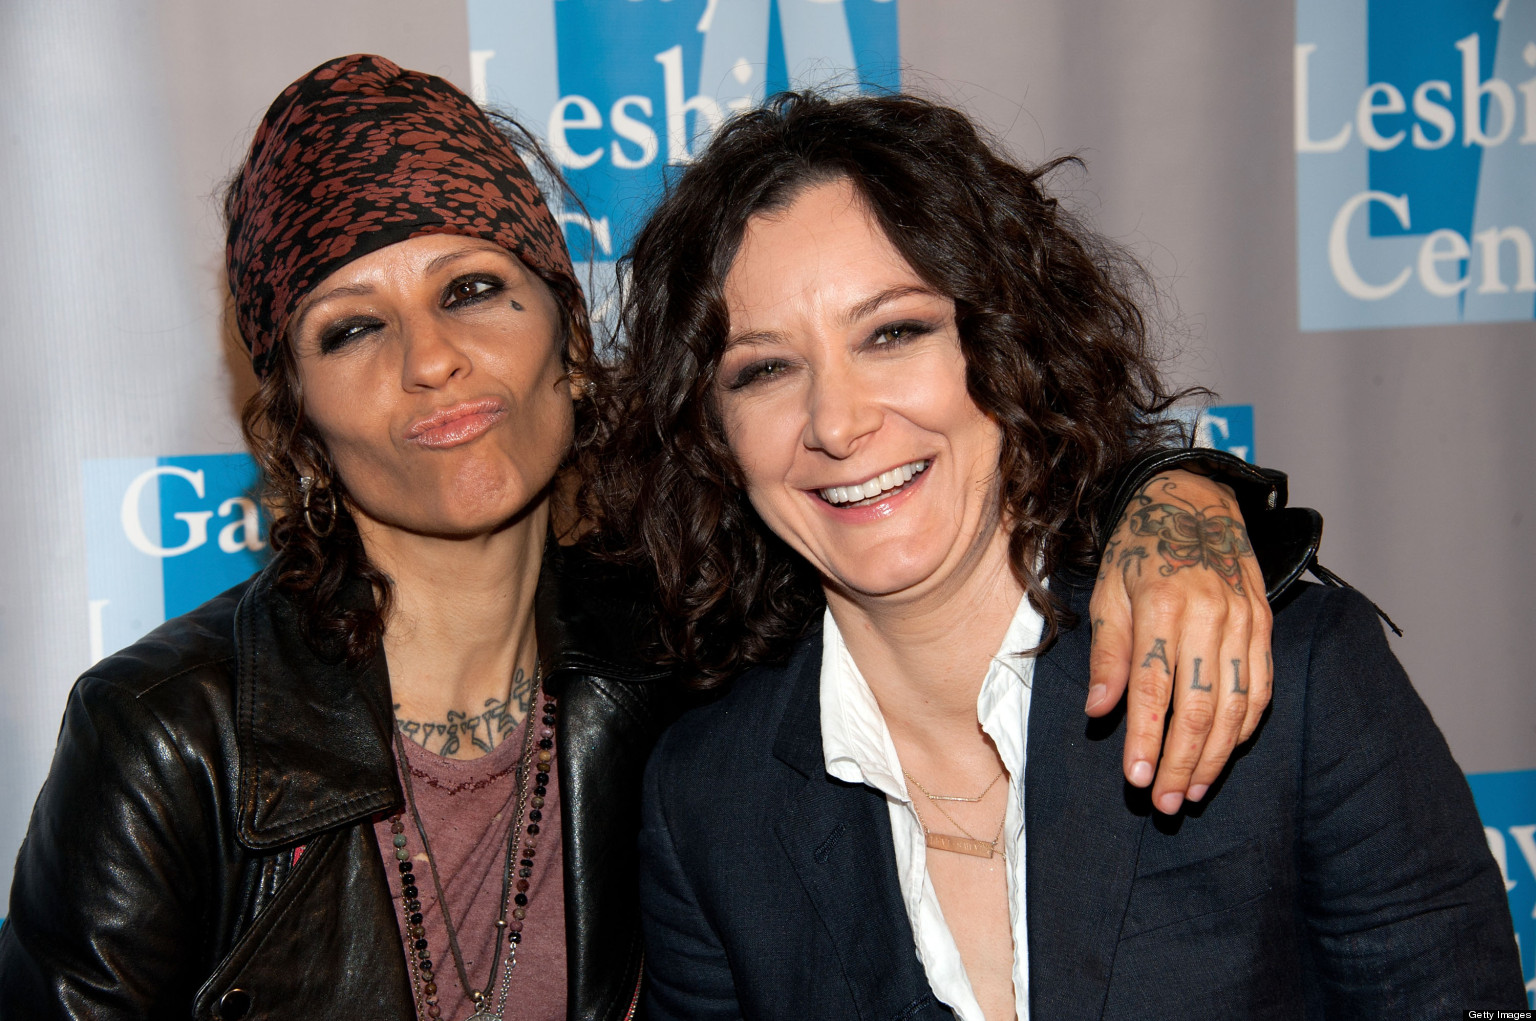 Sara Gilbert wedding ring